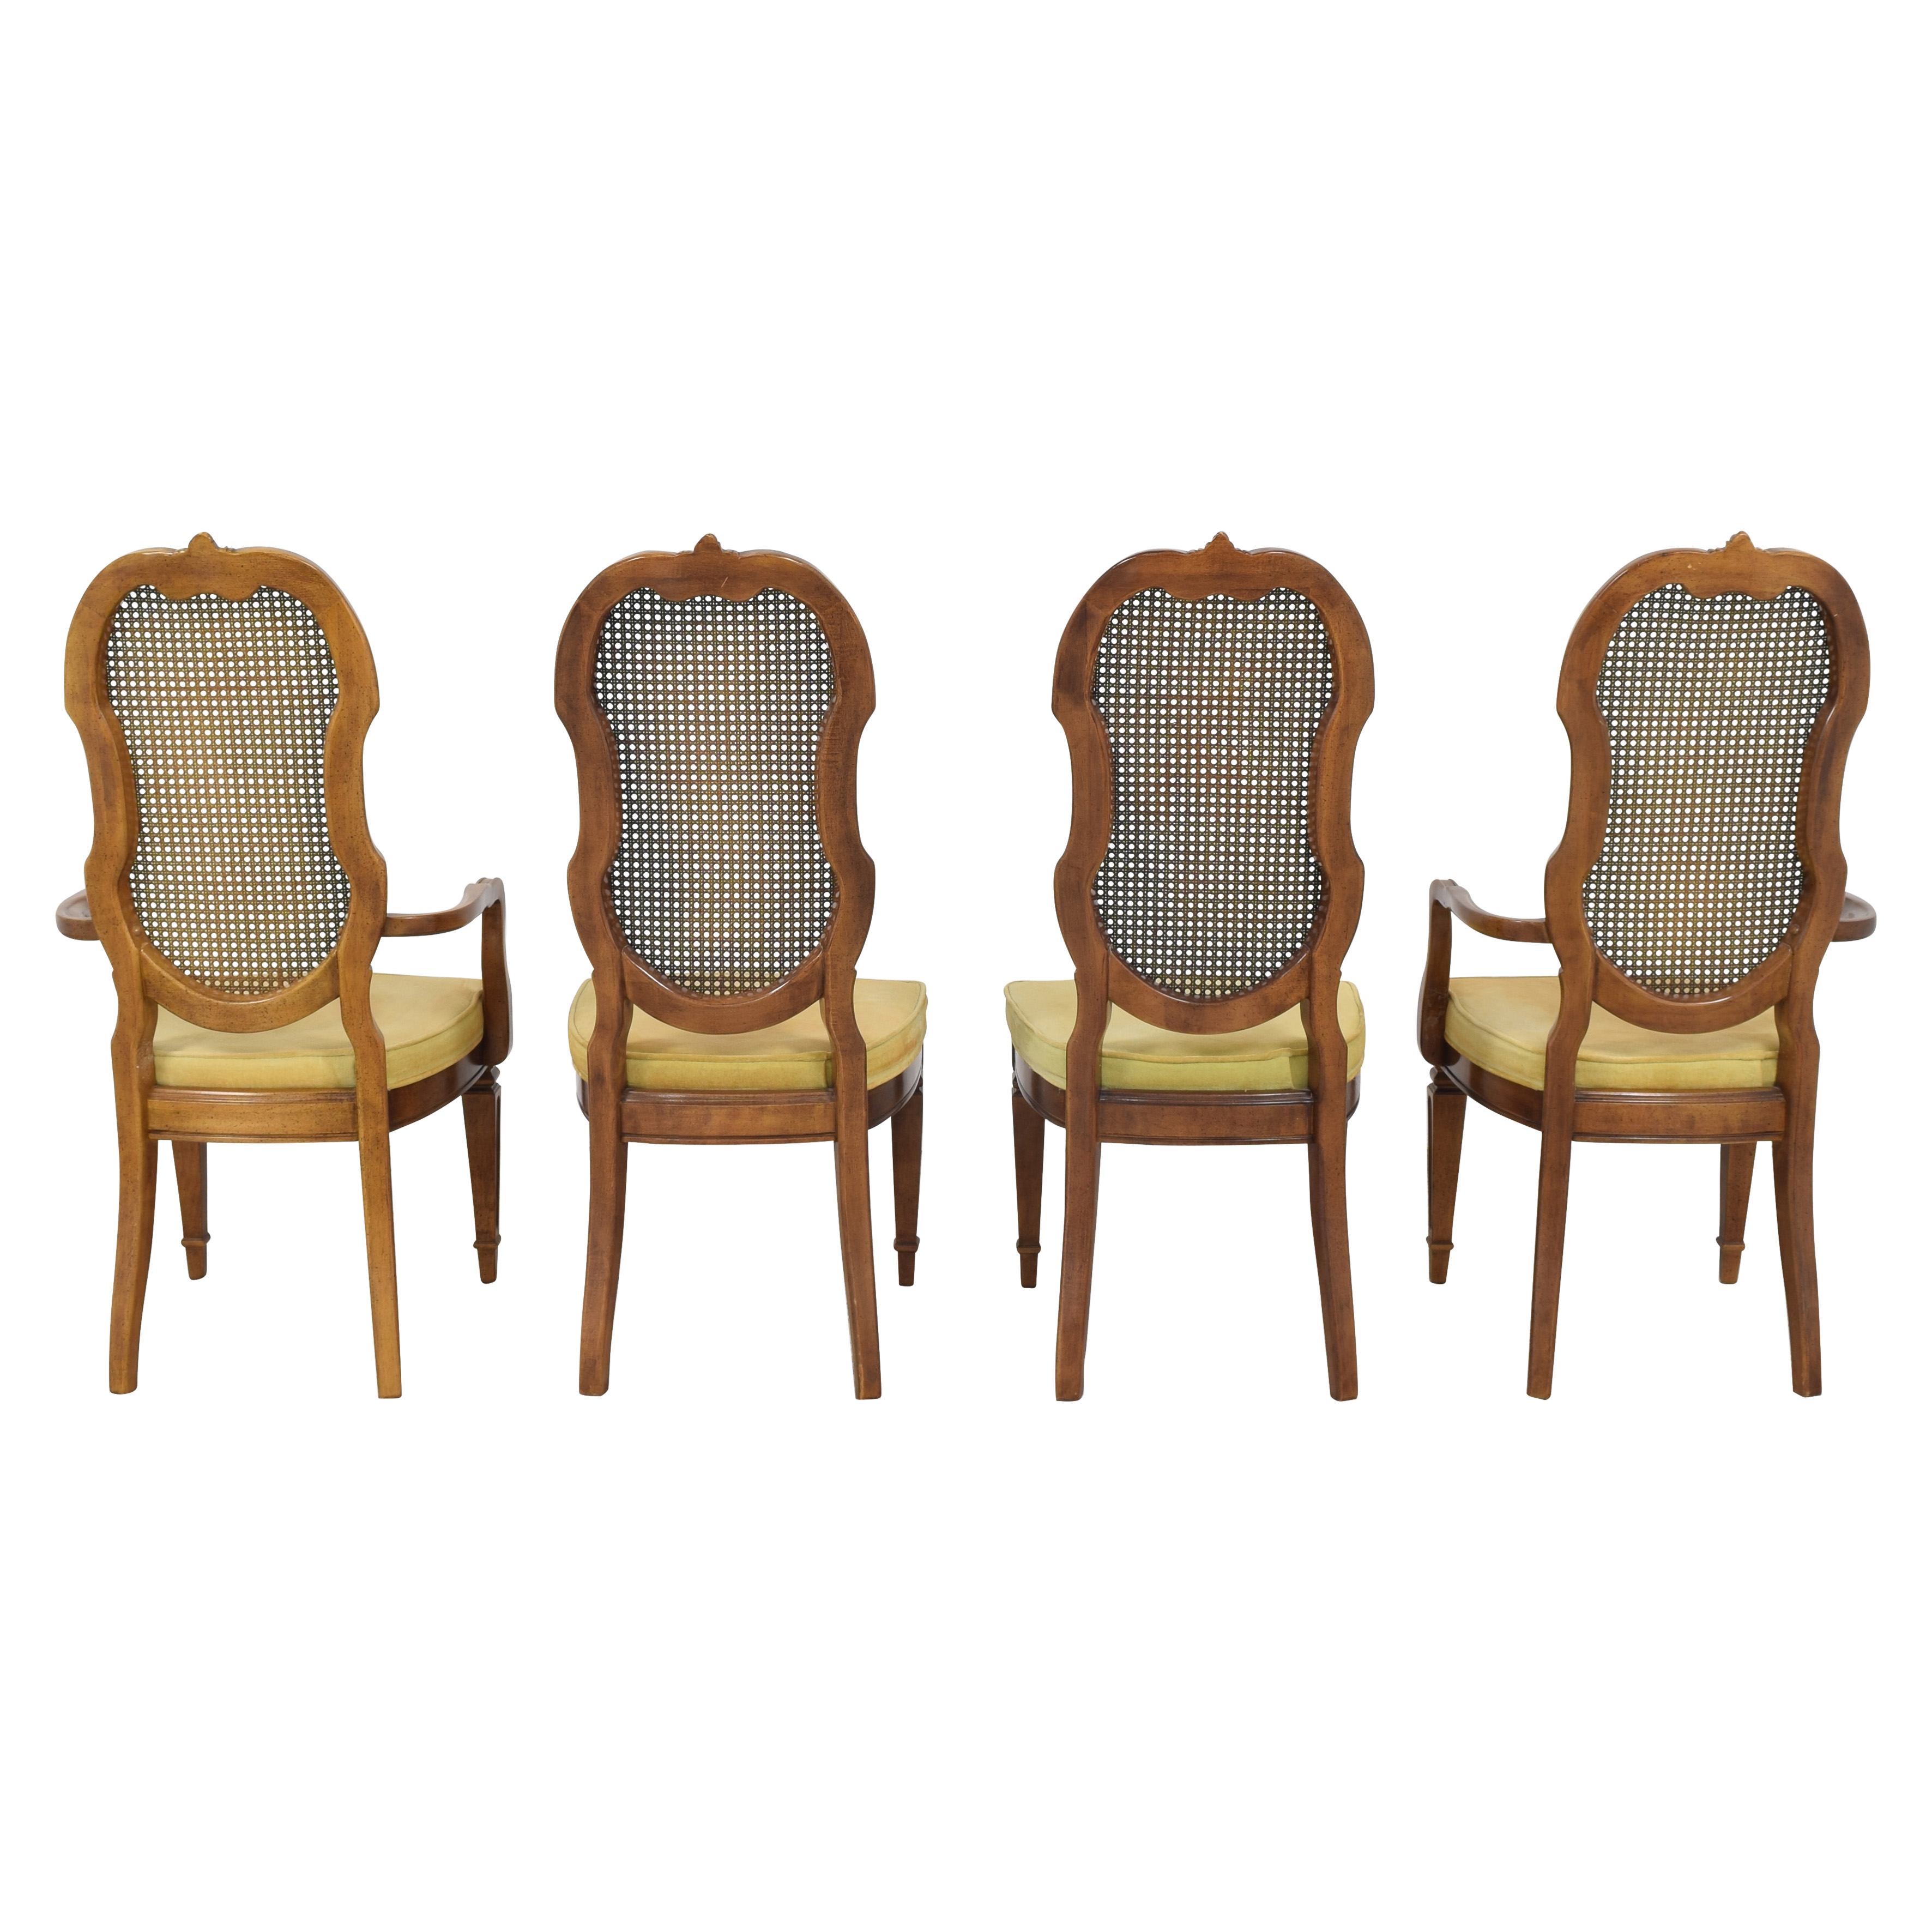 buy Thomasville Italian Provincial Style Cane Back Dining Chairs Thomasville Chairs